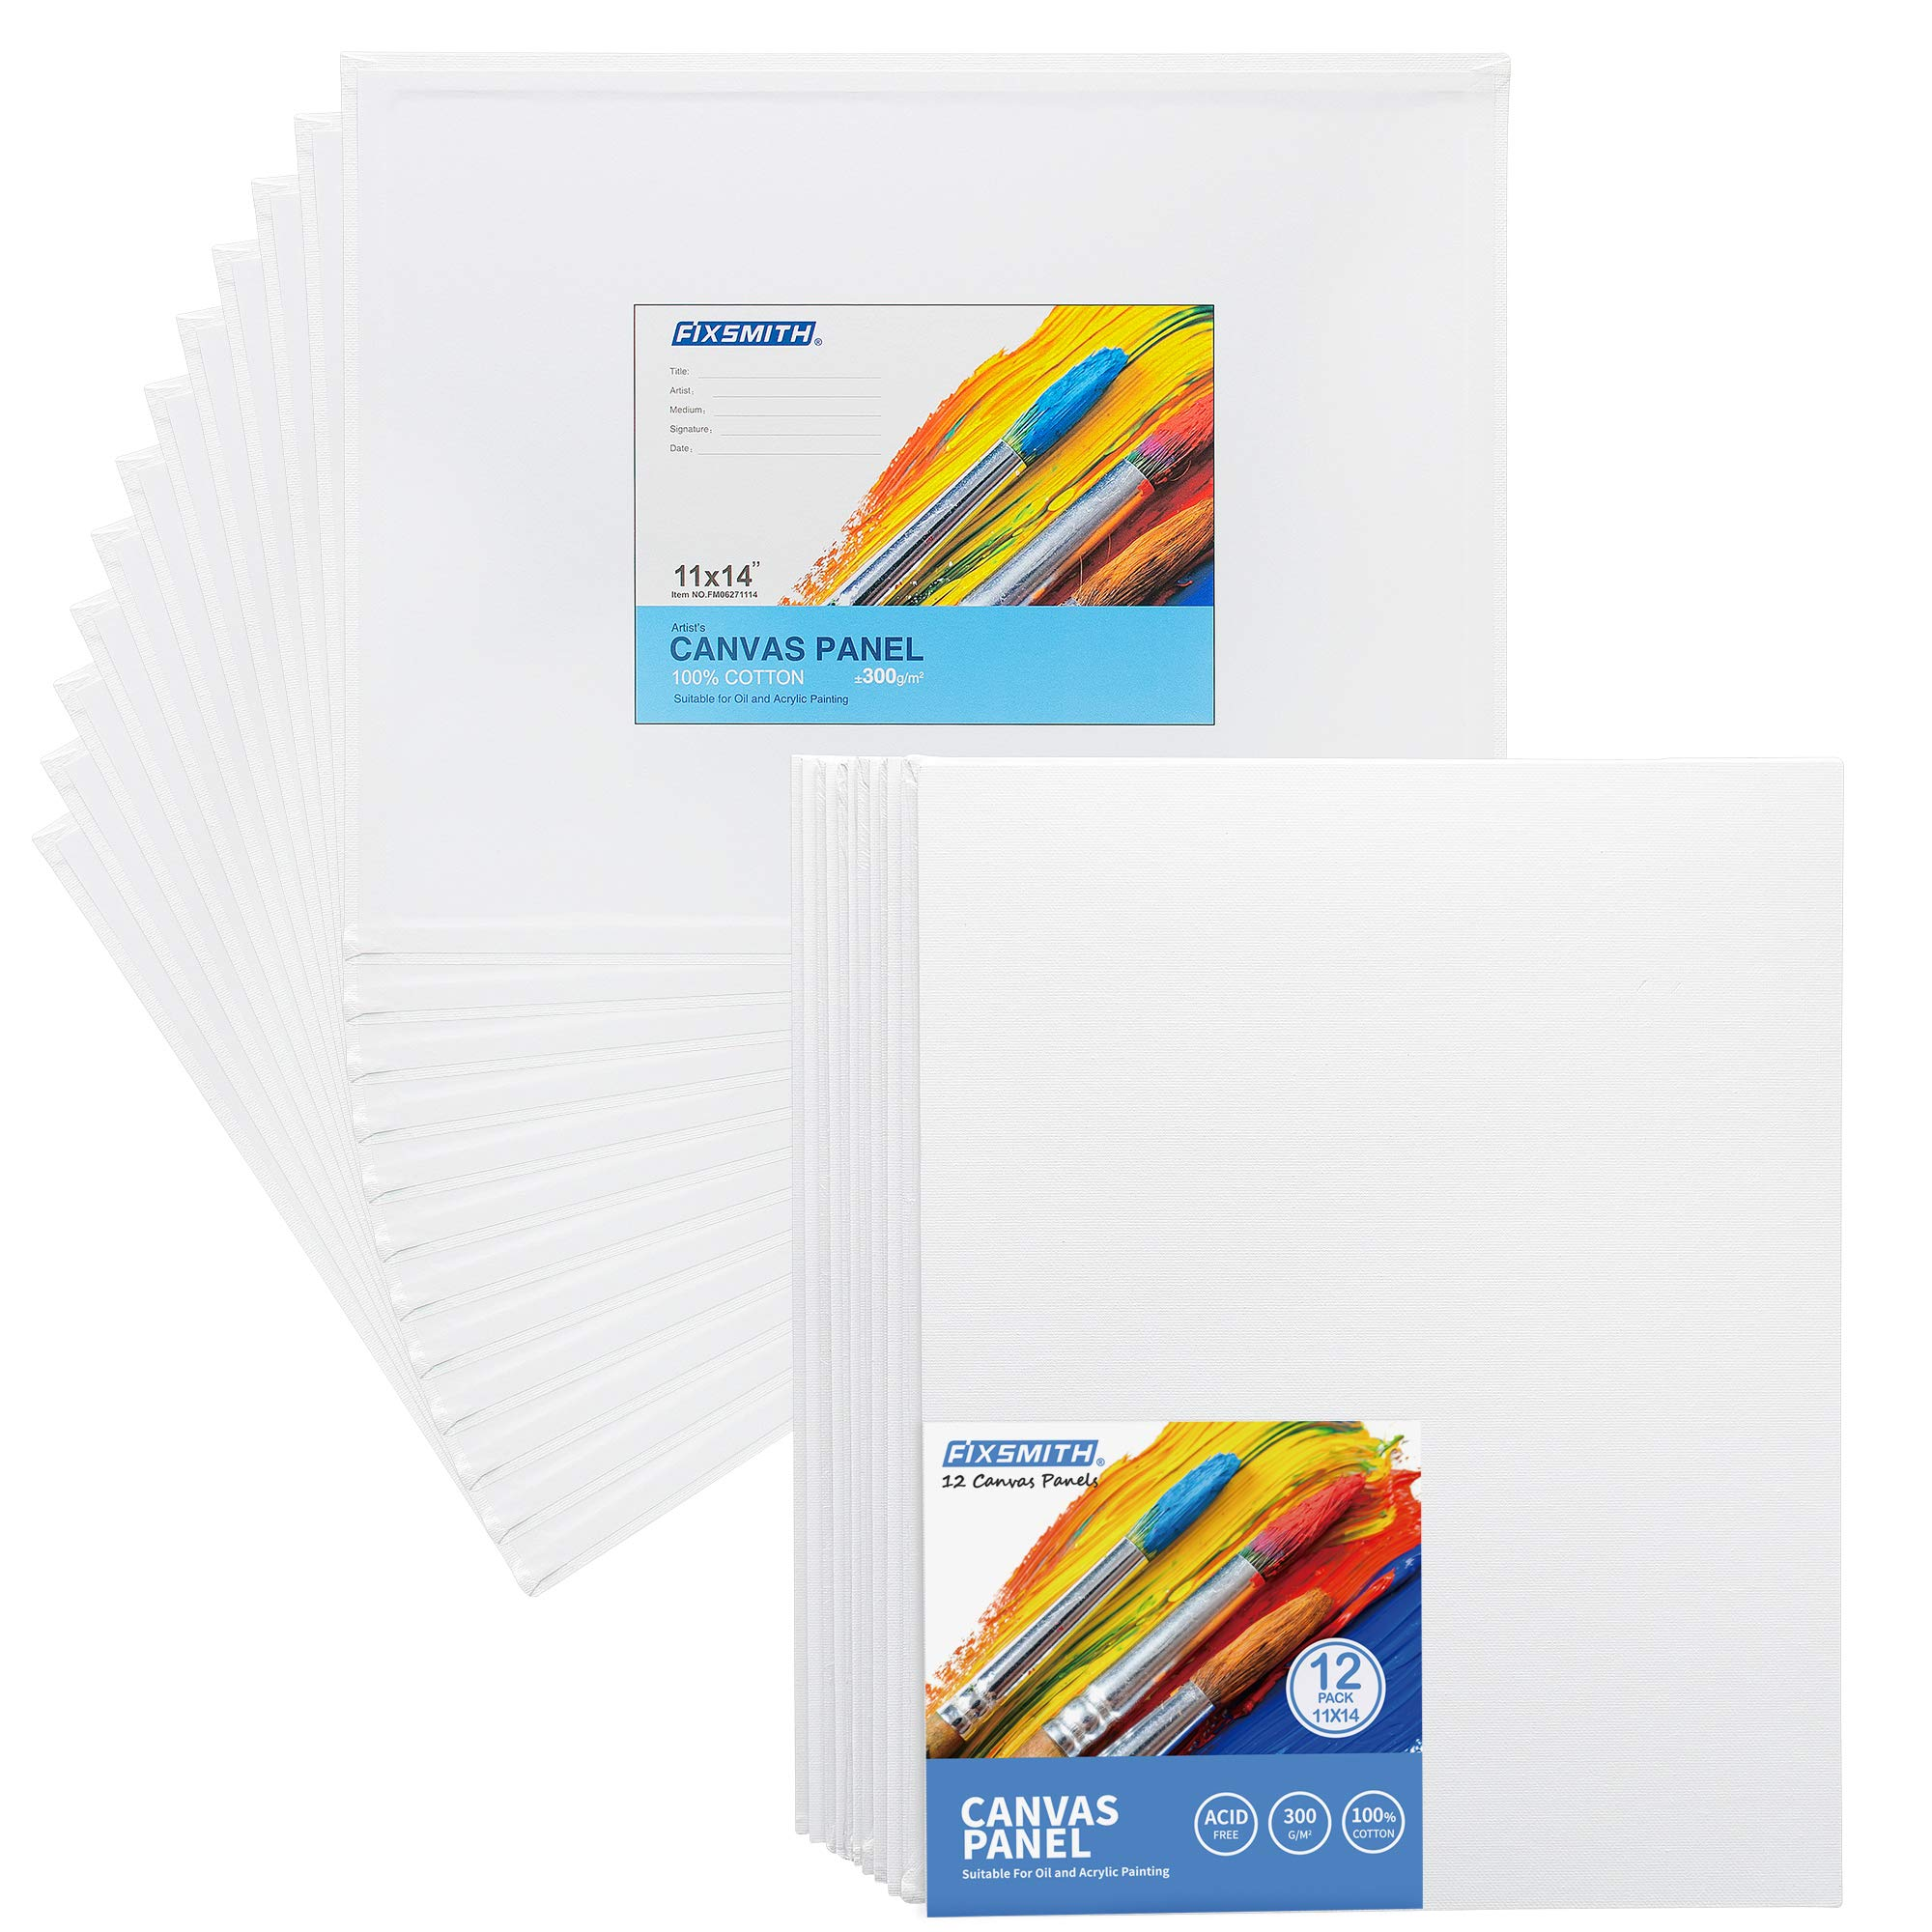 FIXSMITH-Painting-Canvas-Panels,11x14 Inch Canvas Board Super Value 12 Pack Canvases,100% Cotton,Primed Canvas Panel,Acid Free,Artist Canvas Boards for Professionals,Hobby Painters,Students & Kids.